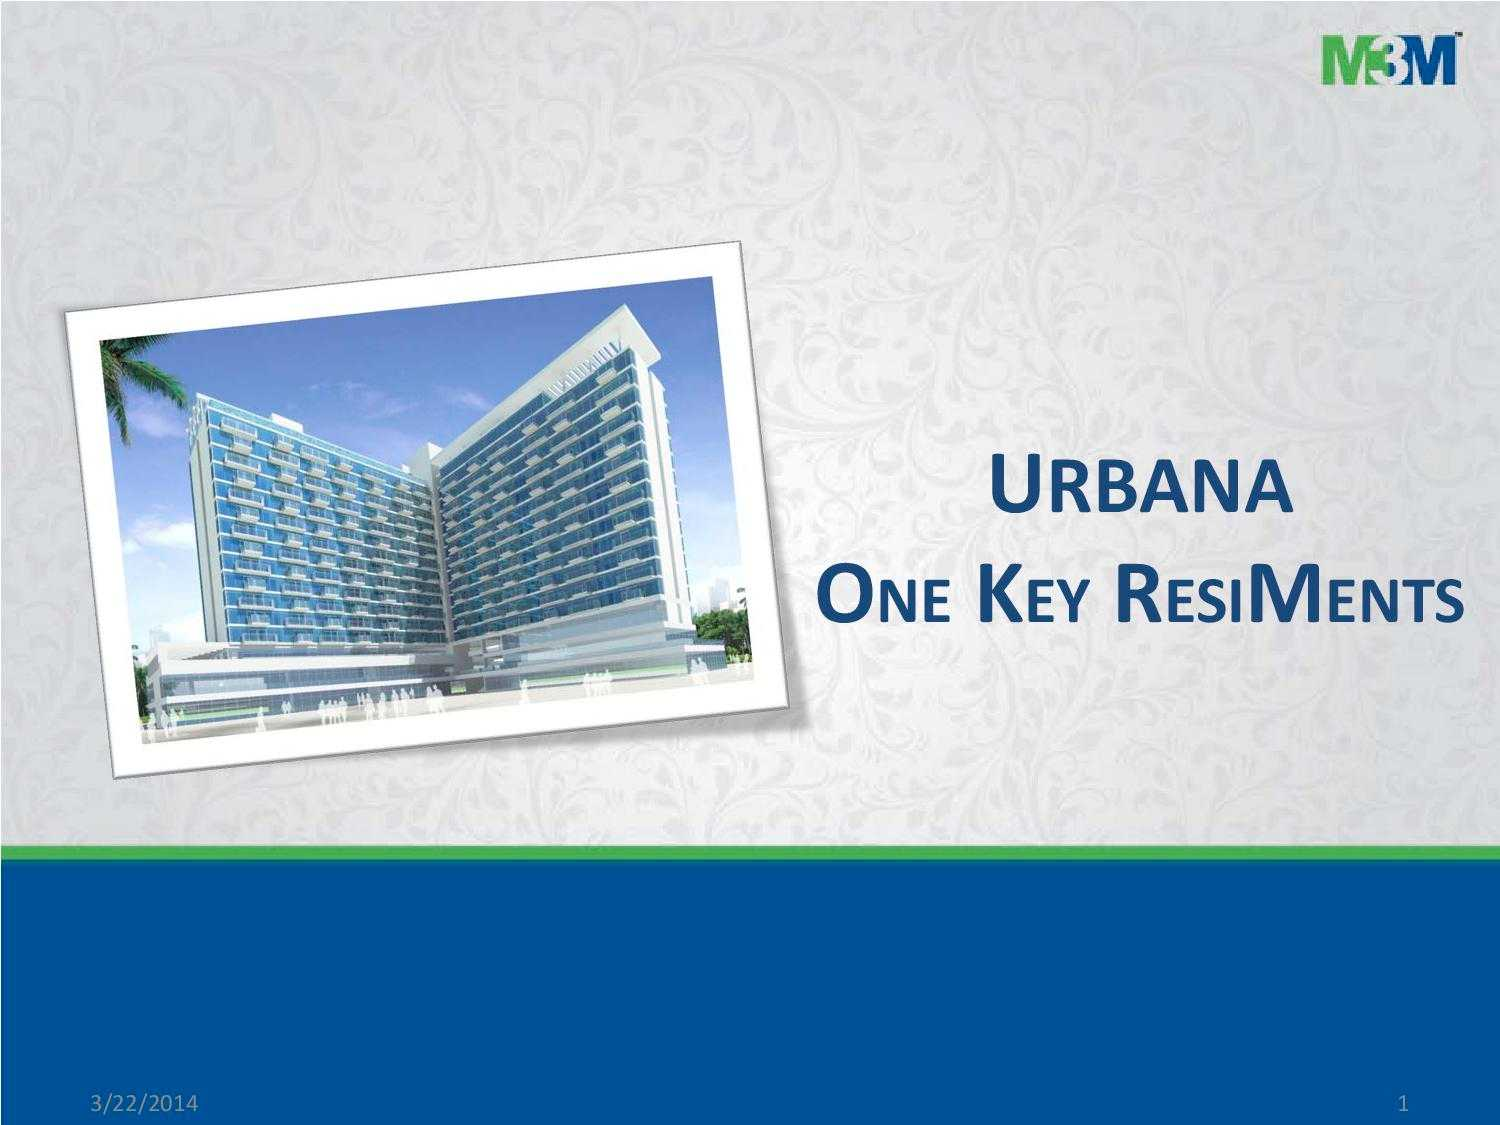 M3M Urbana One Key Resiments